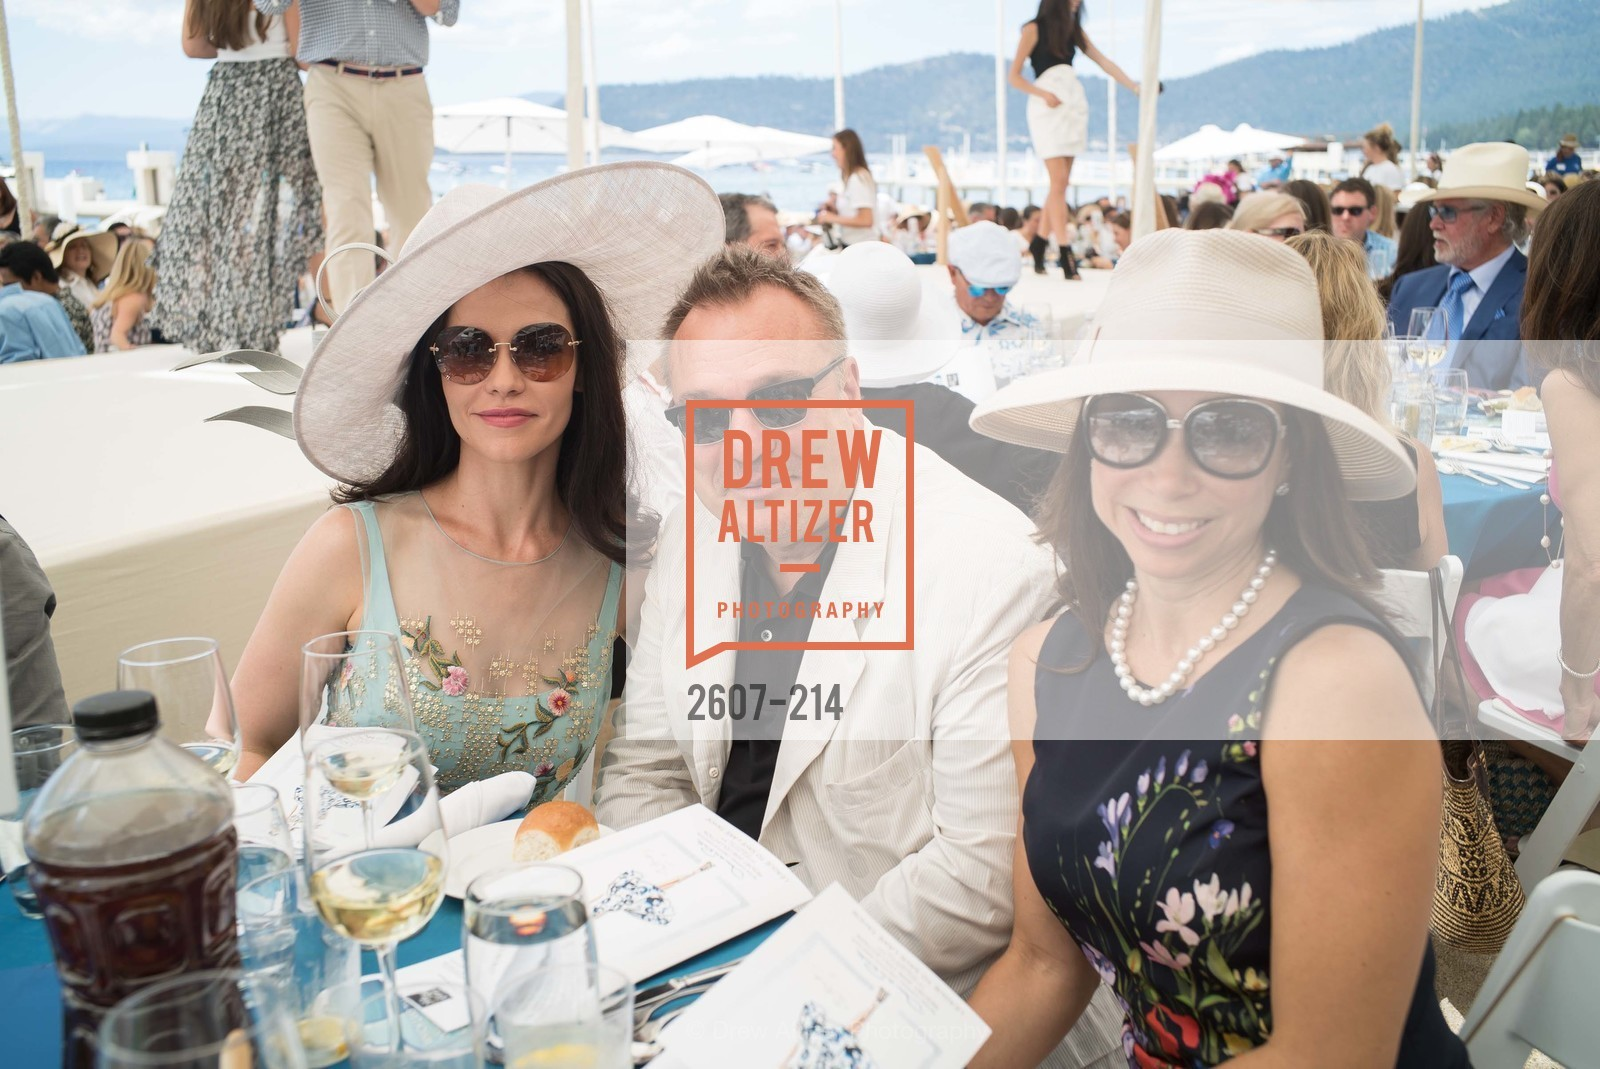 Angela Hamby, Stanlee Gatti, Gina Peterson, Saks Fifth Avenue and The League to Save Lake Tahoe Present Fashion on the Lake, Private Residence, August 1st, 2015,Drew Altizer, Drew Altizer Photography, full-service agency, private events, San Francisco photographer, photographer california